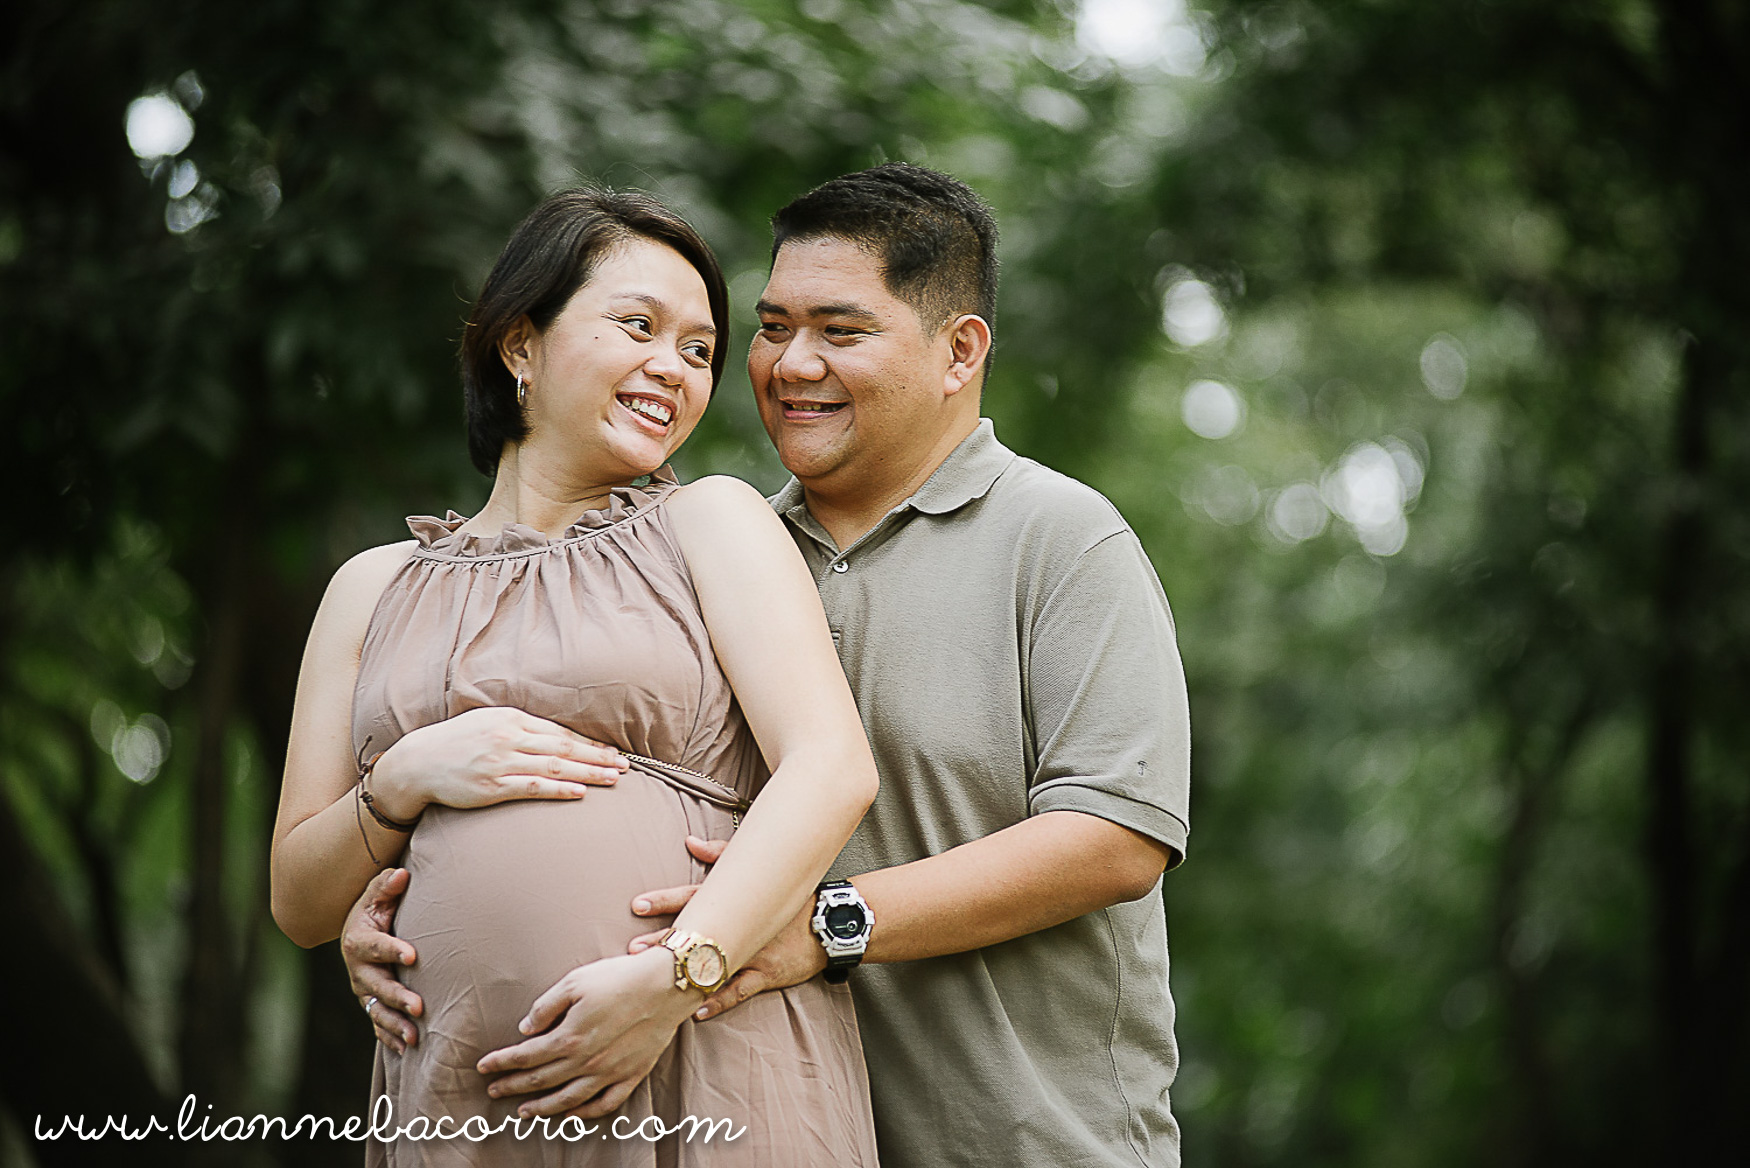 Lifestyle Maternity Family Photography by Lianne Bacorro-16